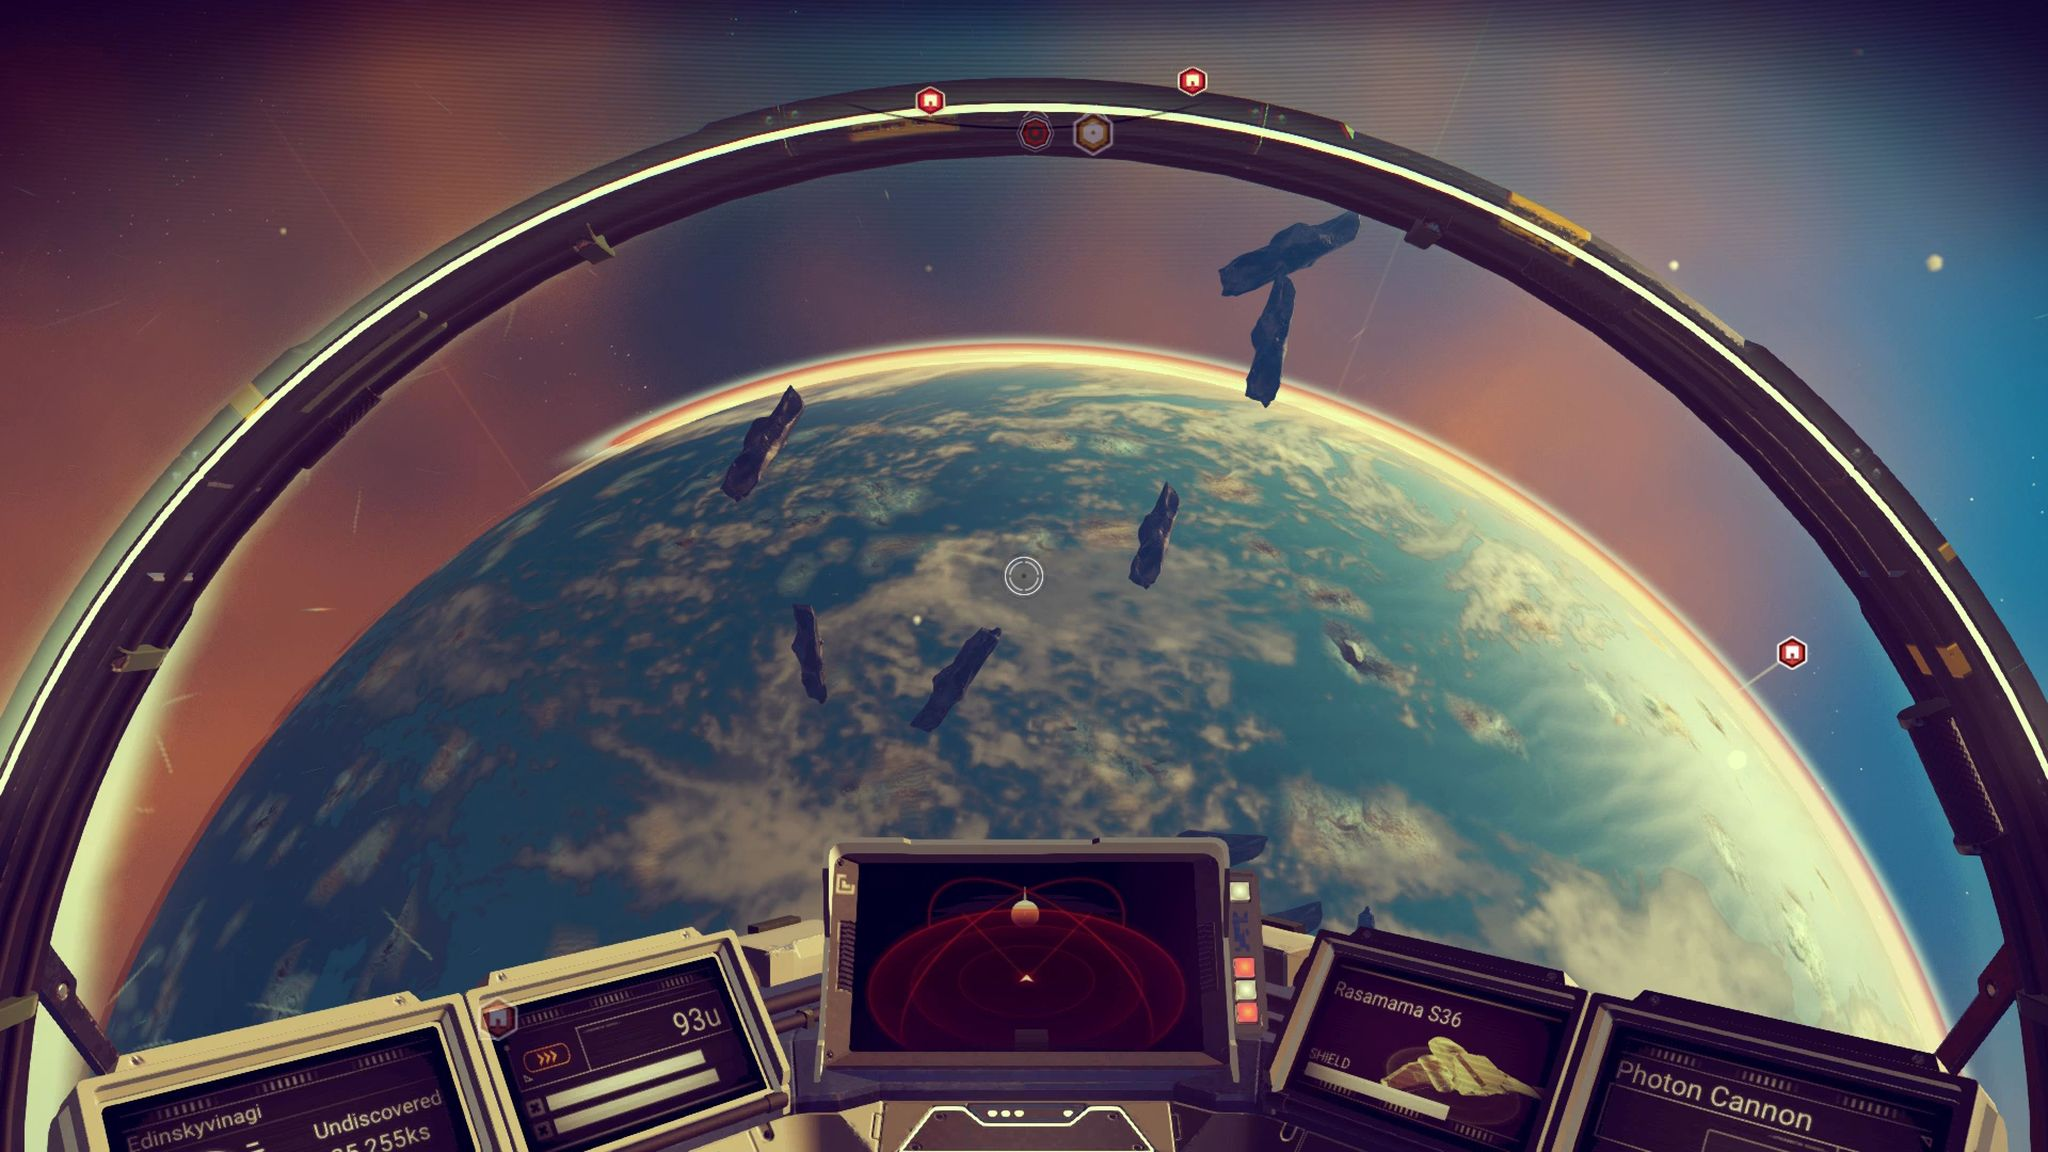 How No Man's Sky Creates an Entire Galaxy With Procedural Generation